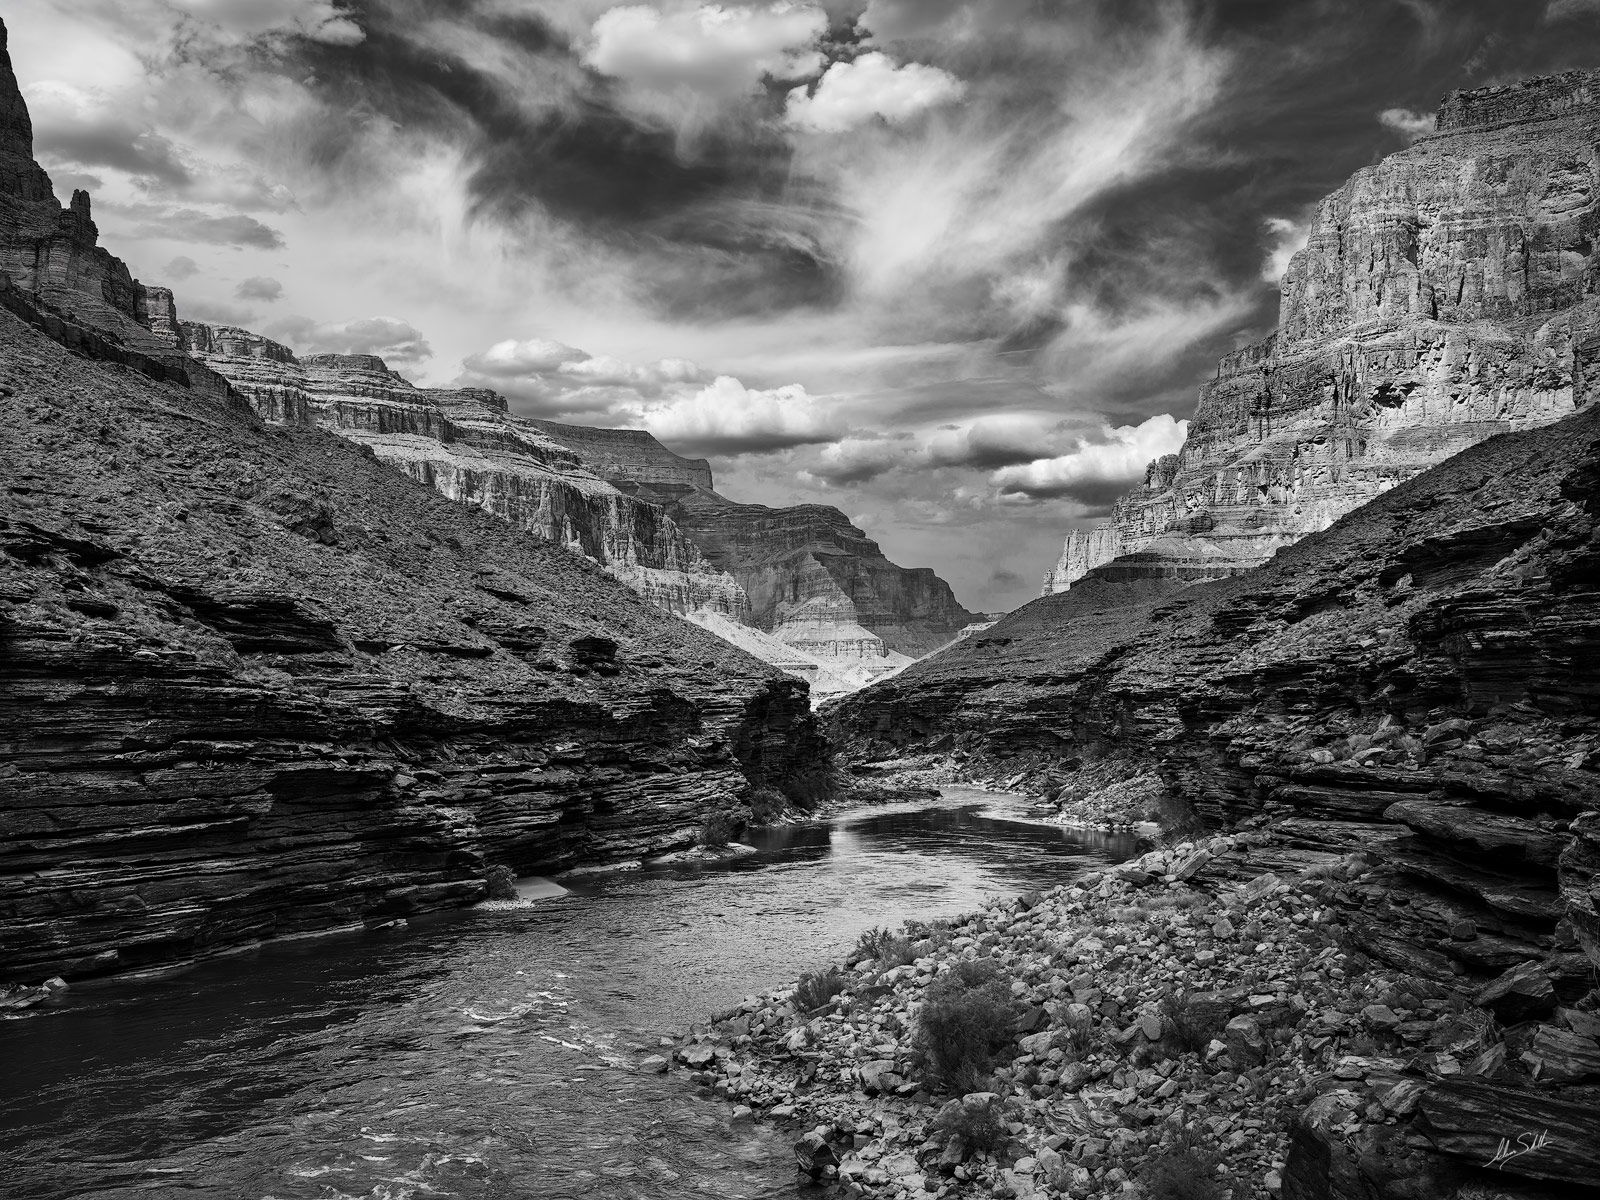 A black and white photograph of the Colorado River from a ledge high above Randys Rock camp in the Grand Canyon.